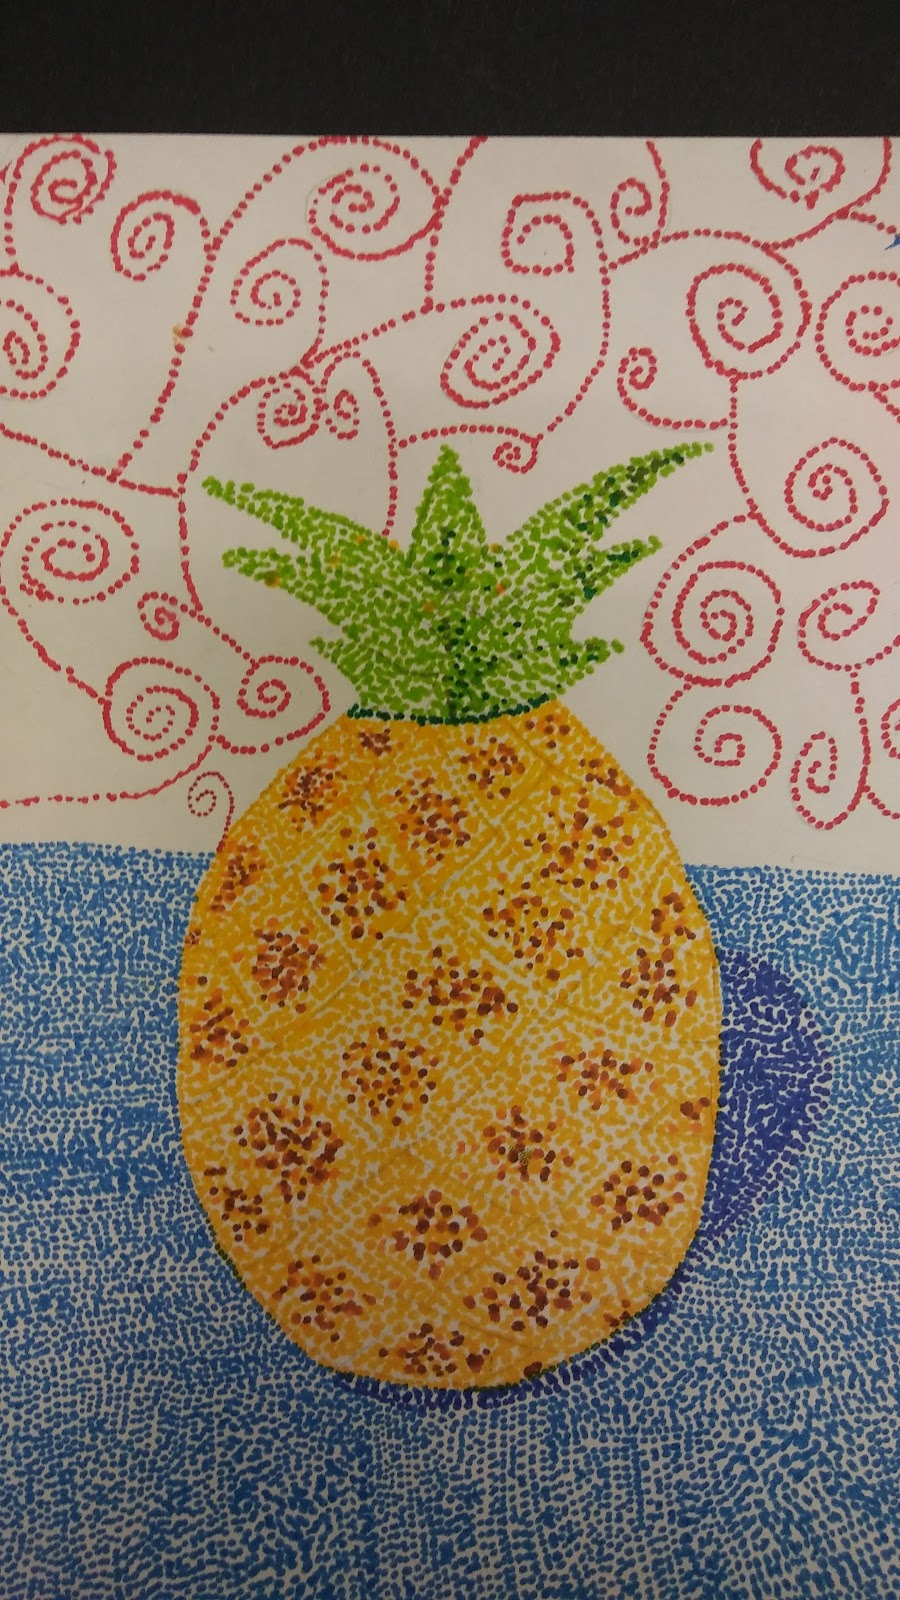 Landmark Student Painting of Pinnapple